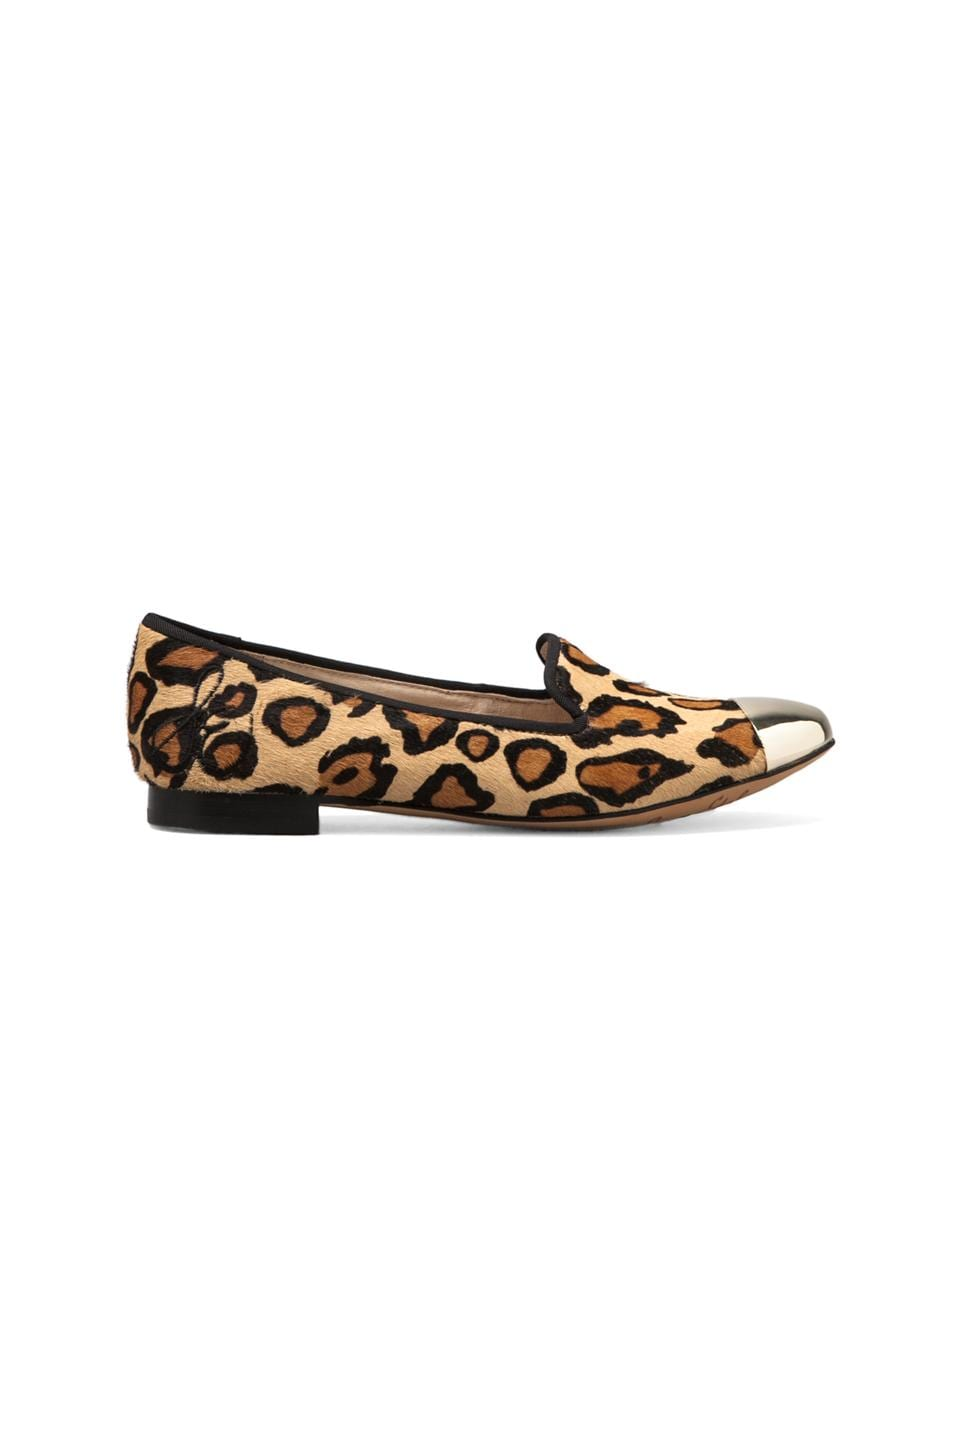 Sam Edelman Aster Flat with Calf Hair in New Nude Leopard/White Gold